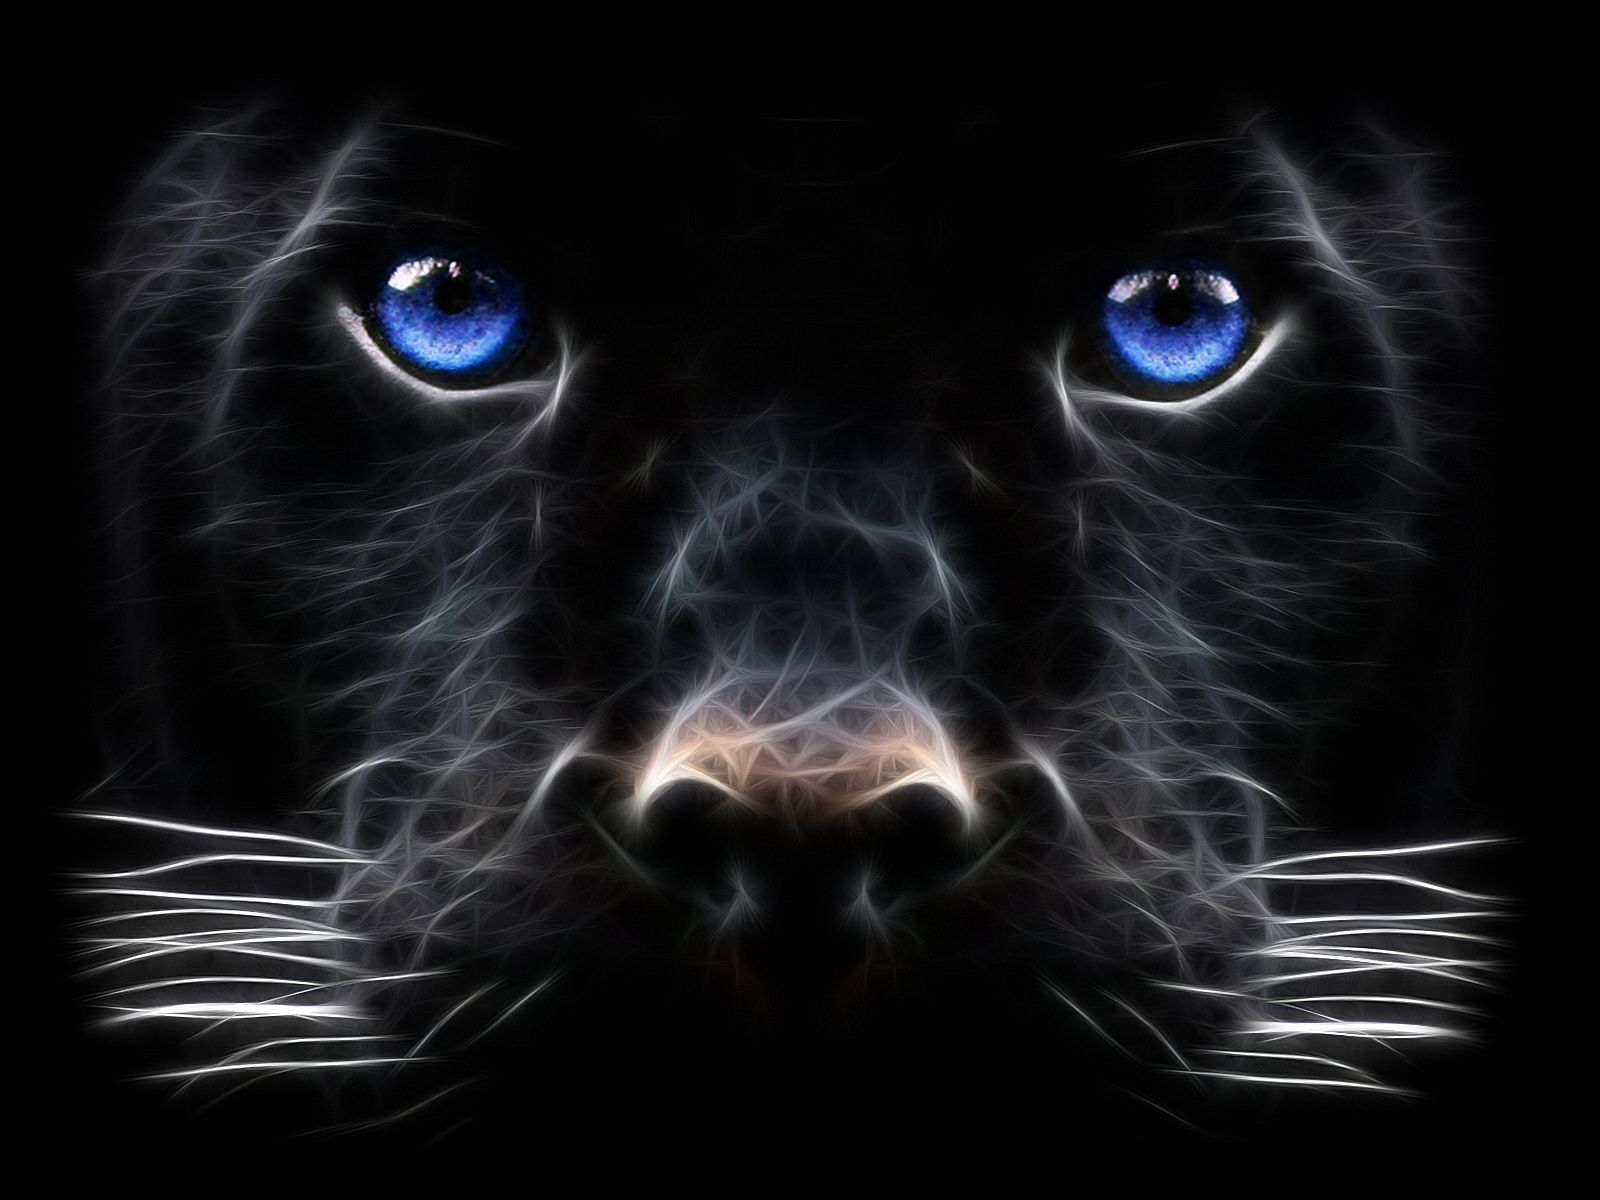 Pin By Tina Parker On Animal Kingdom Panther Pictures Cat With Blue Eyes Beast Wallpaper